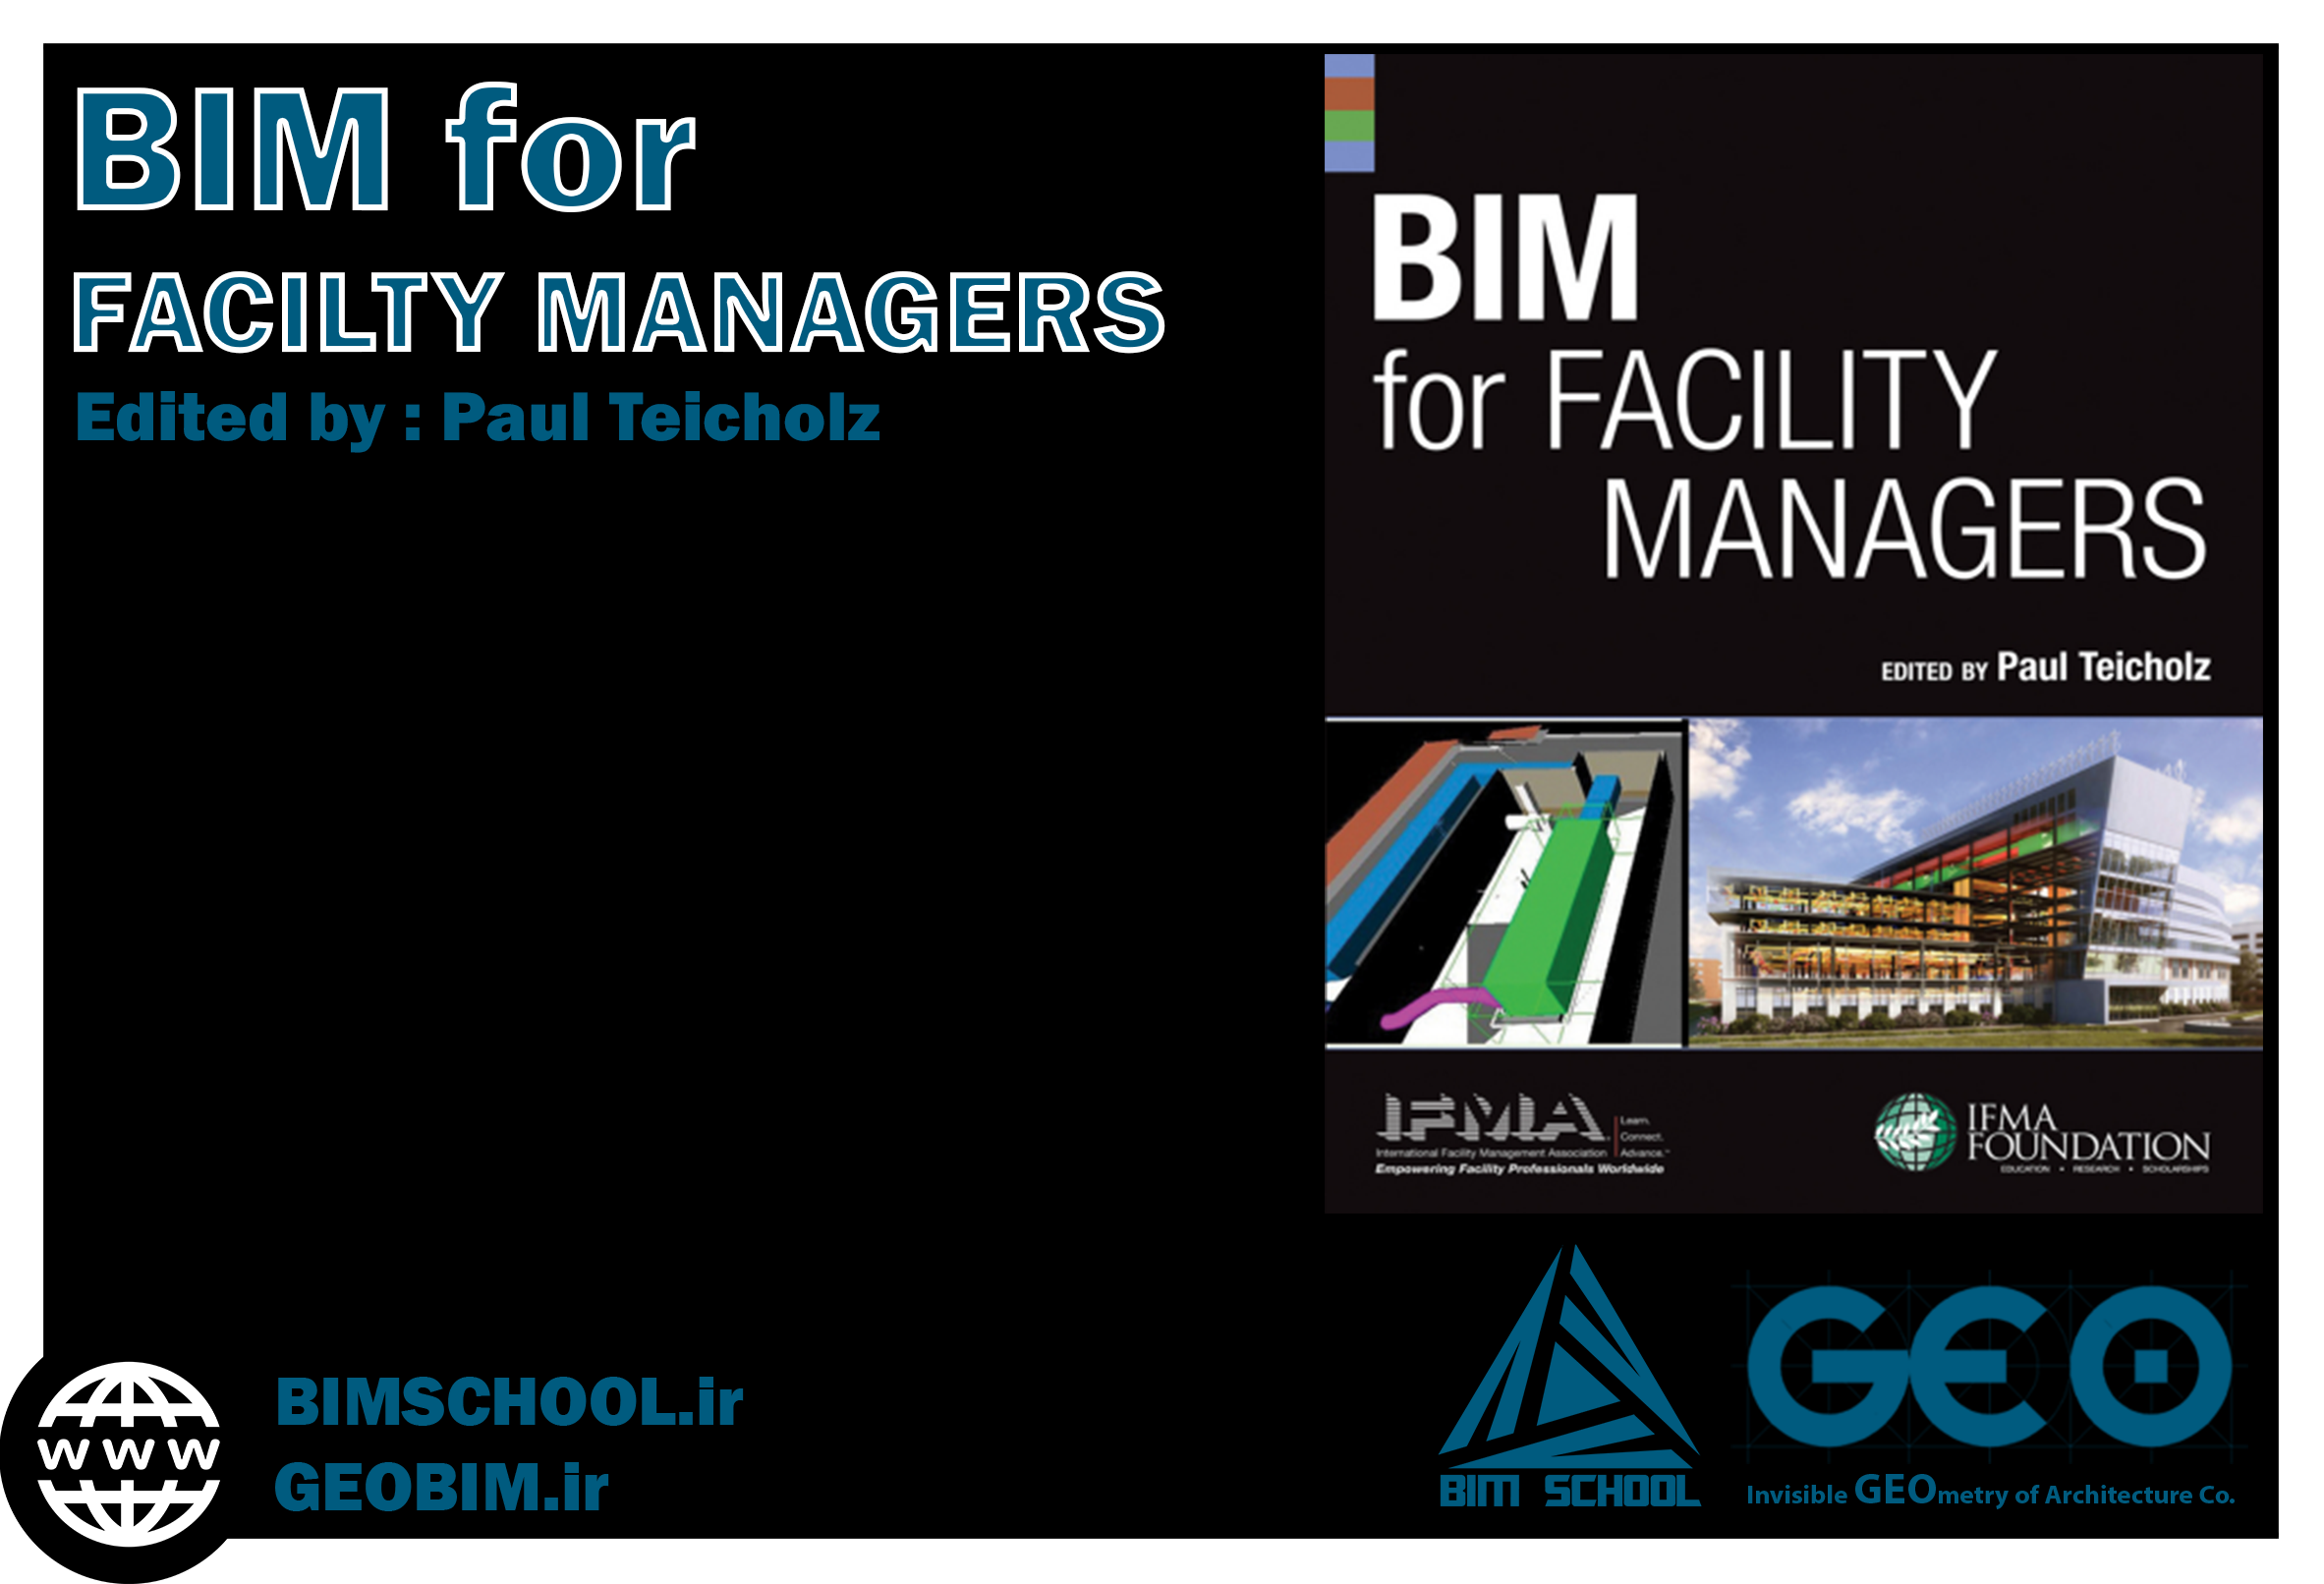 BIM for Facility Managers(www.bimschool.ir-www.geobim.ir)